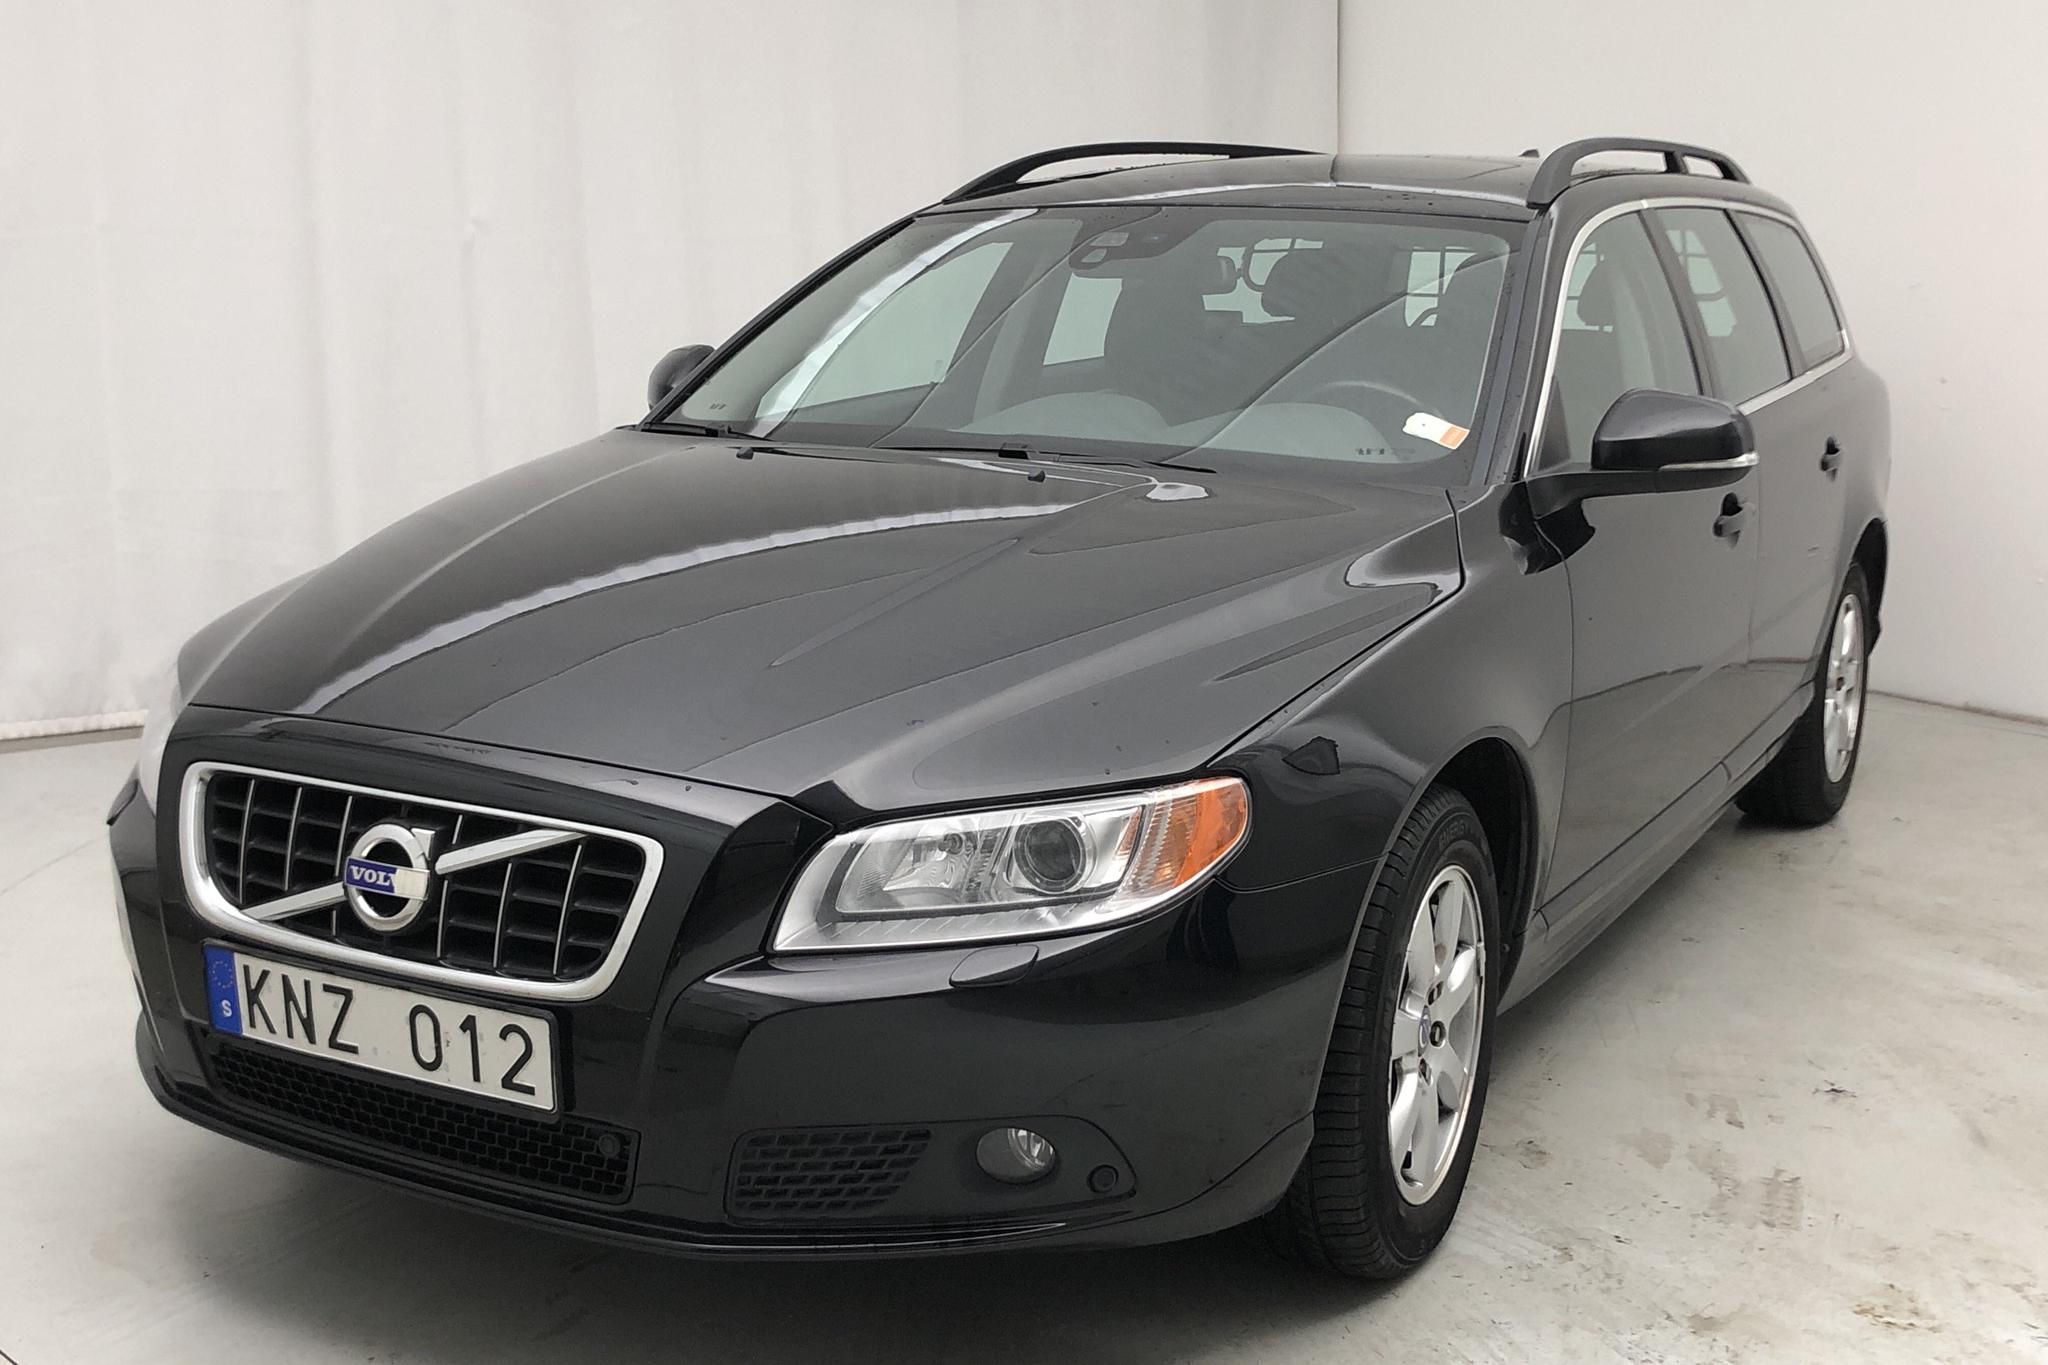 Volvo V70 II D3 (163hk) - 149 000 km - Manual - black - 2012